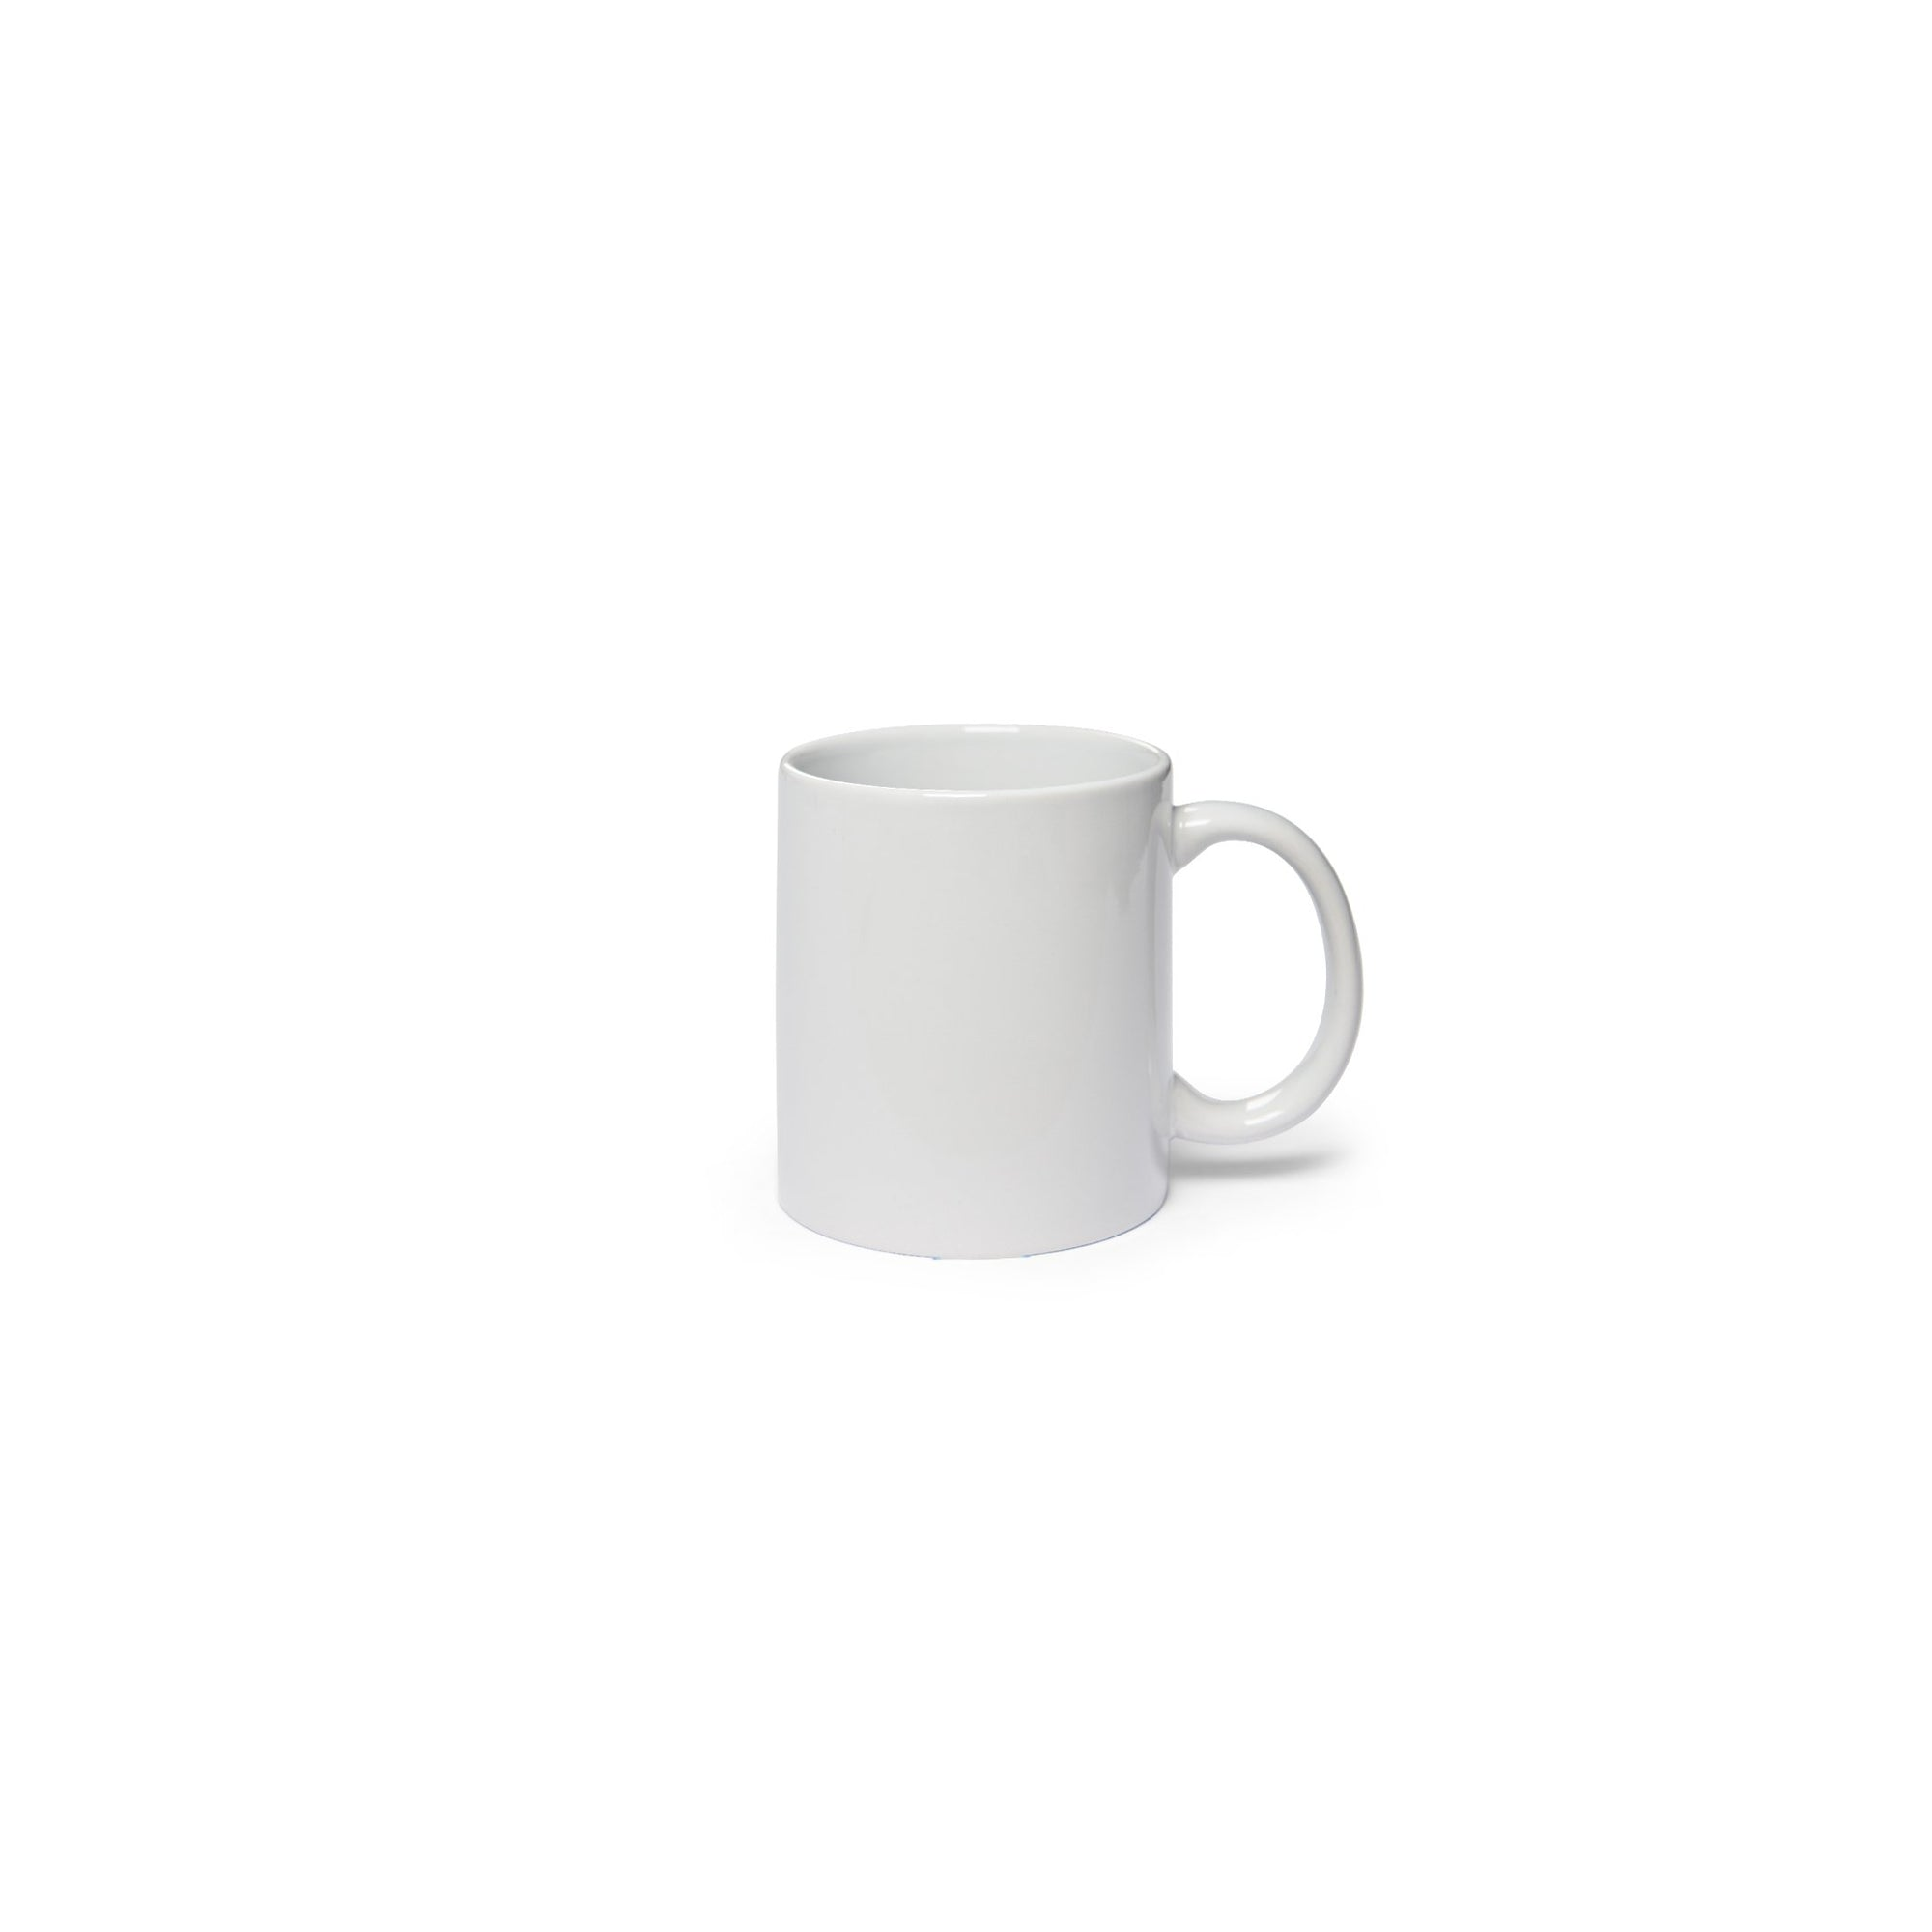 Polar Mug Product Photo #3